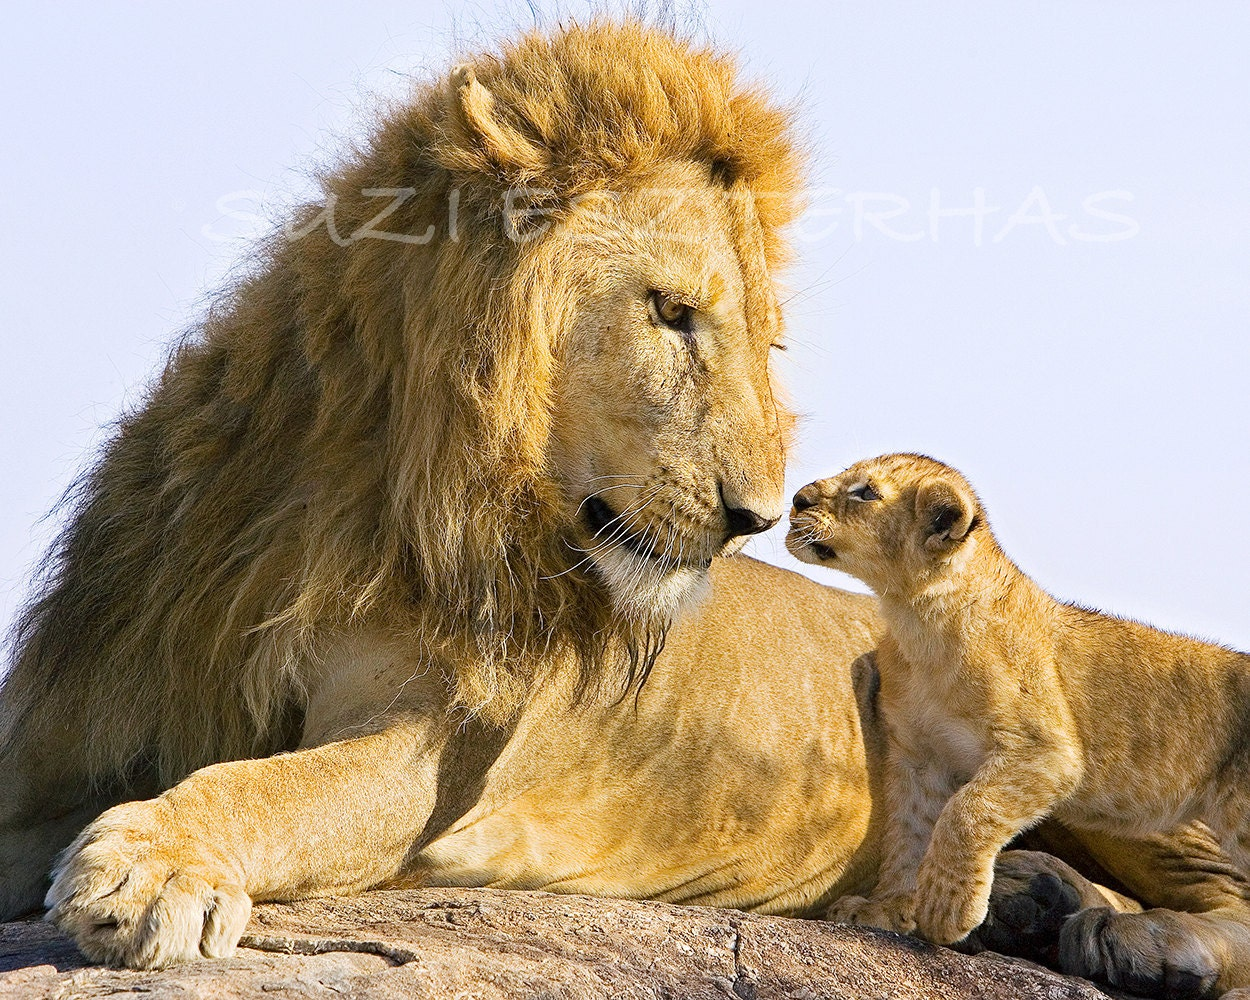 SAFARI BABY ANIMAL Photography Set of 4 Photos by ...